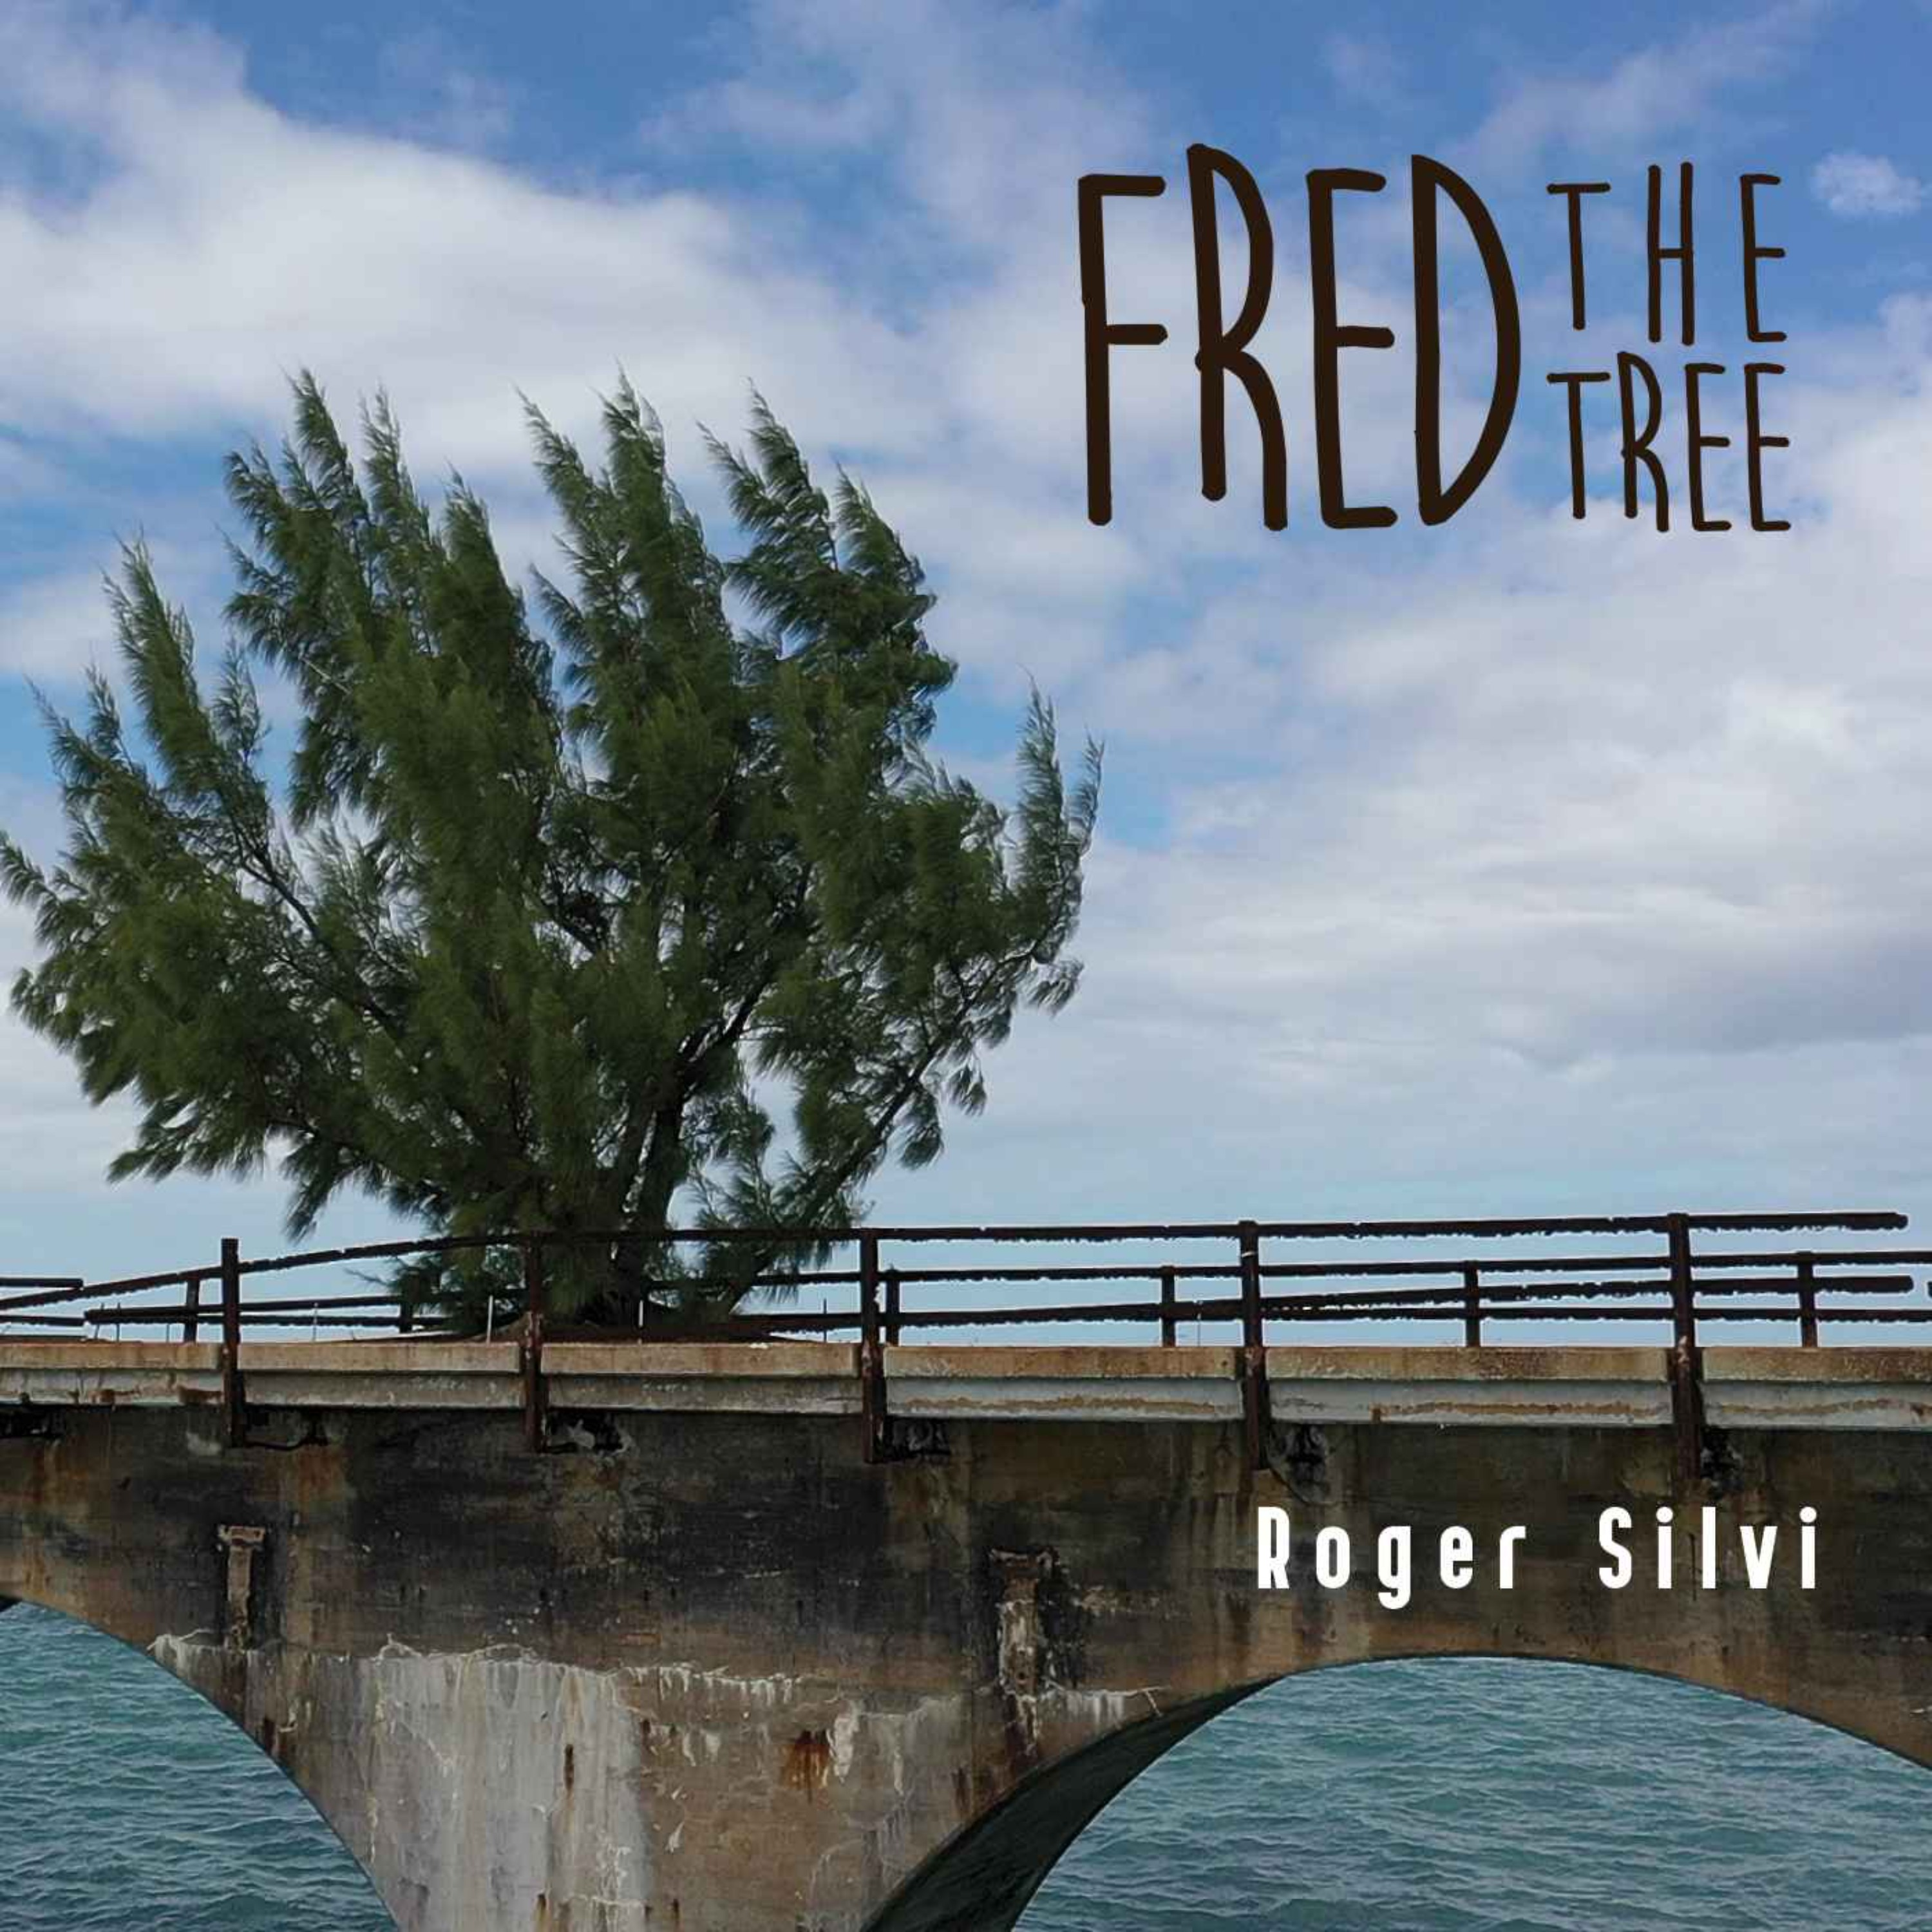 RadioA1A Interview with Roger Silvi, Singer-Songwriter 'Fred the Tree'